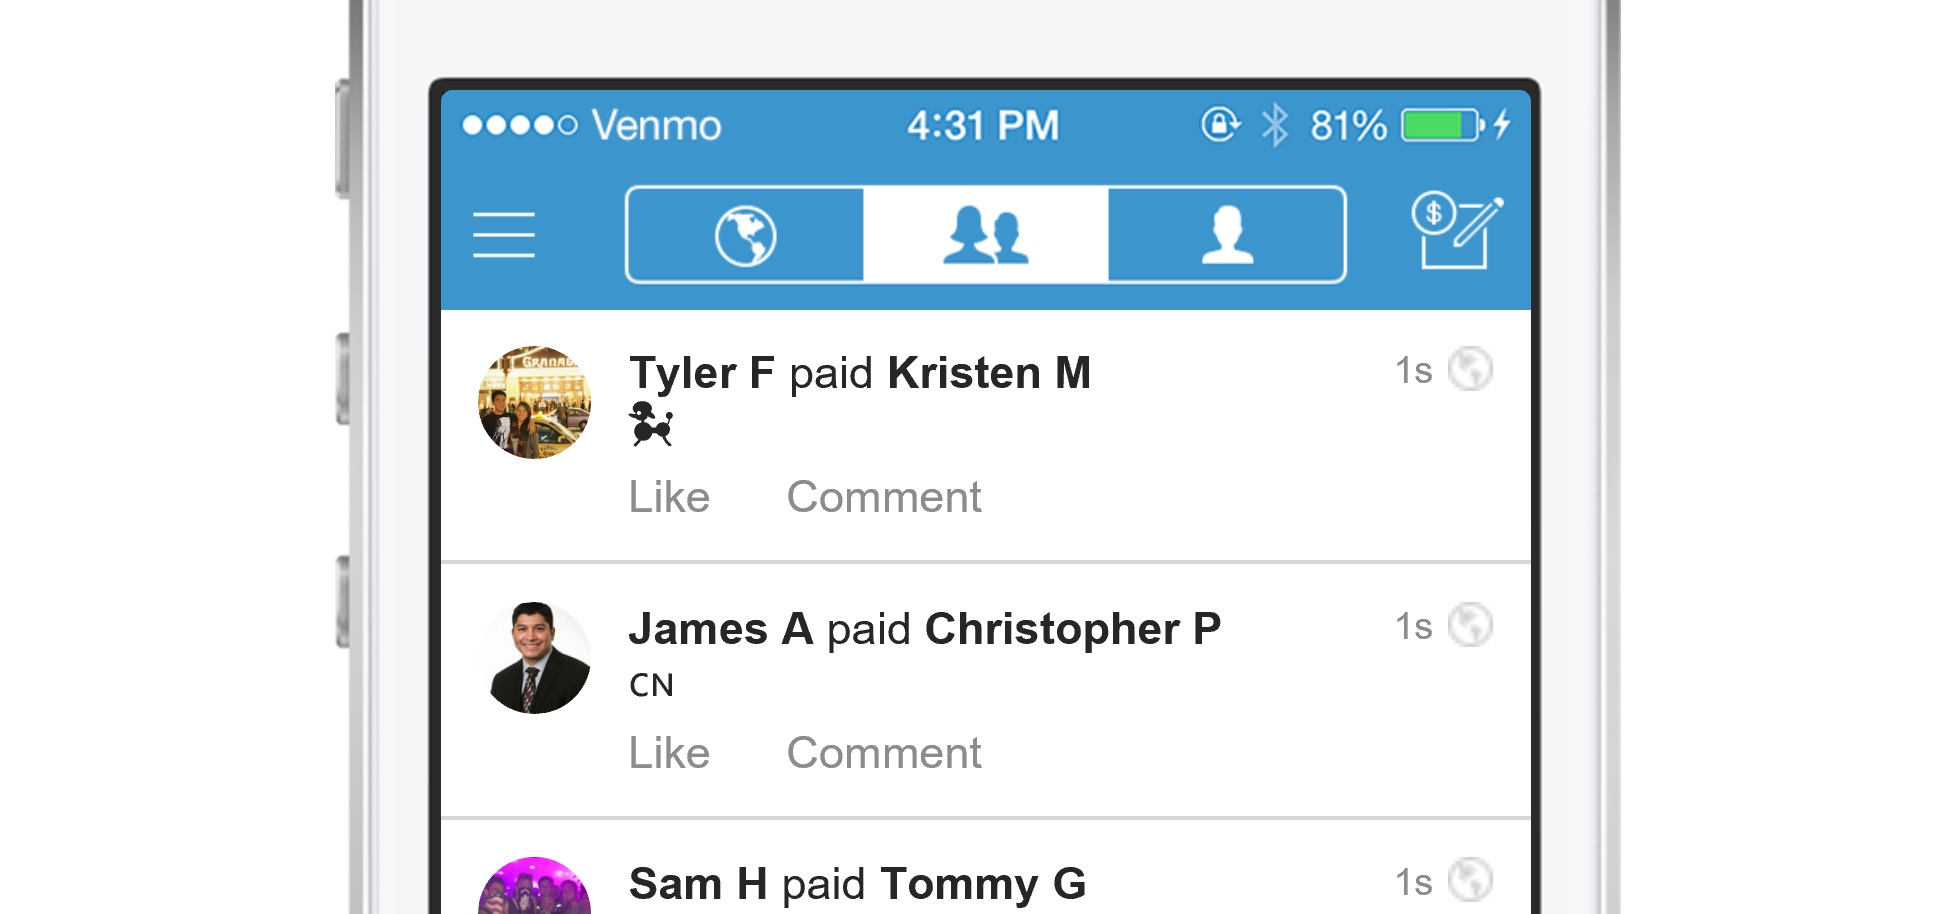 Venmo crosses $1B monthly transfers for the first time